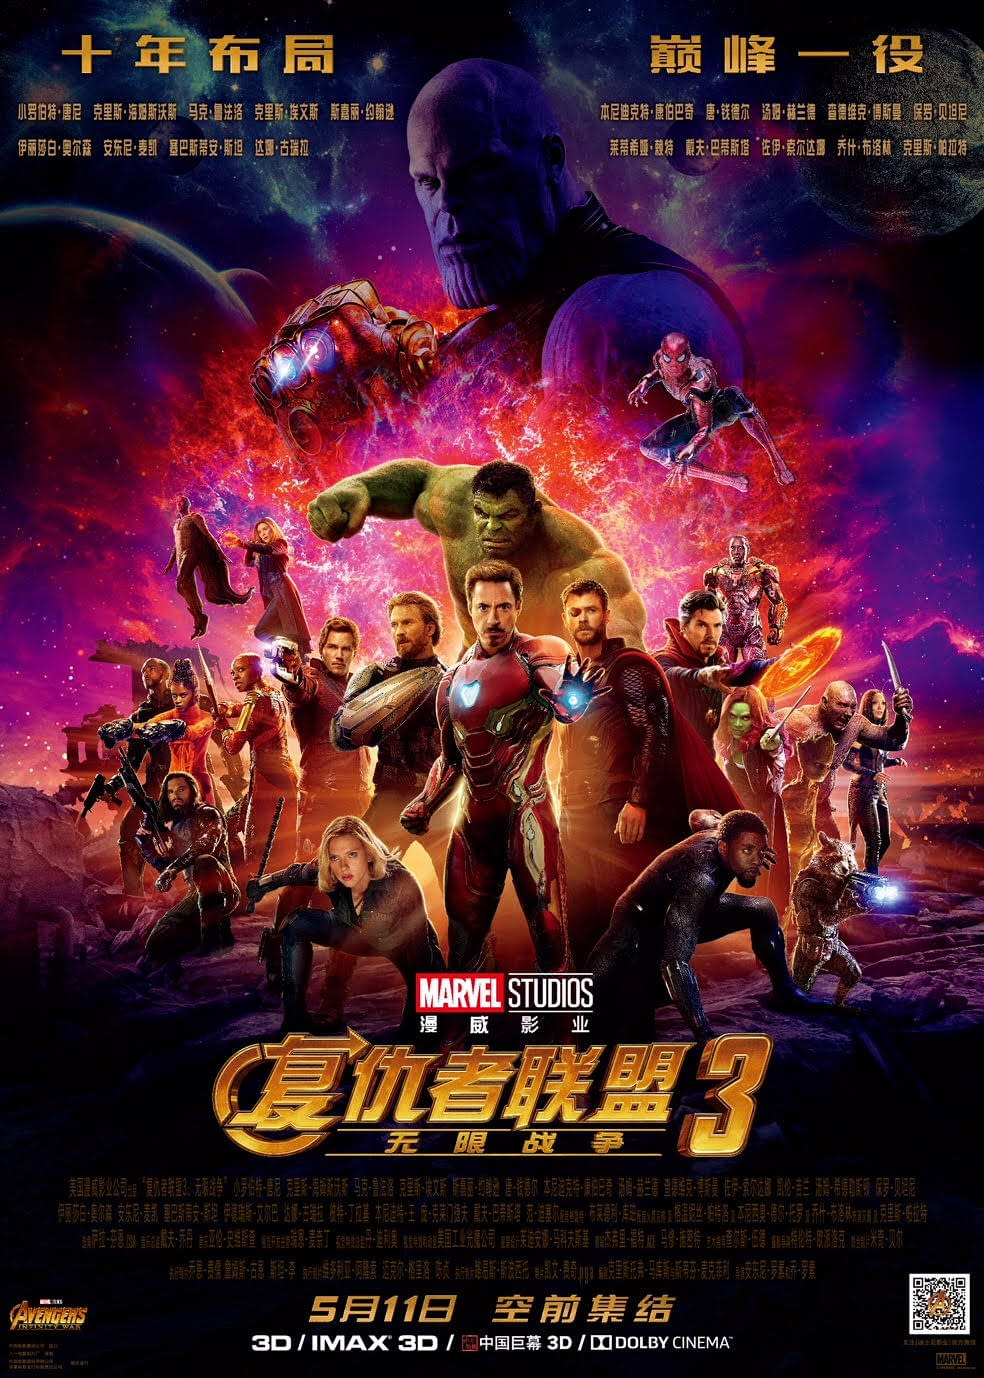 Avengers: Infinity War Gets a Chinese Release Date Plus a New Poster